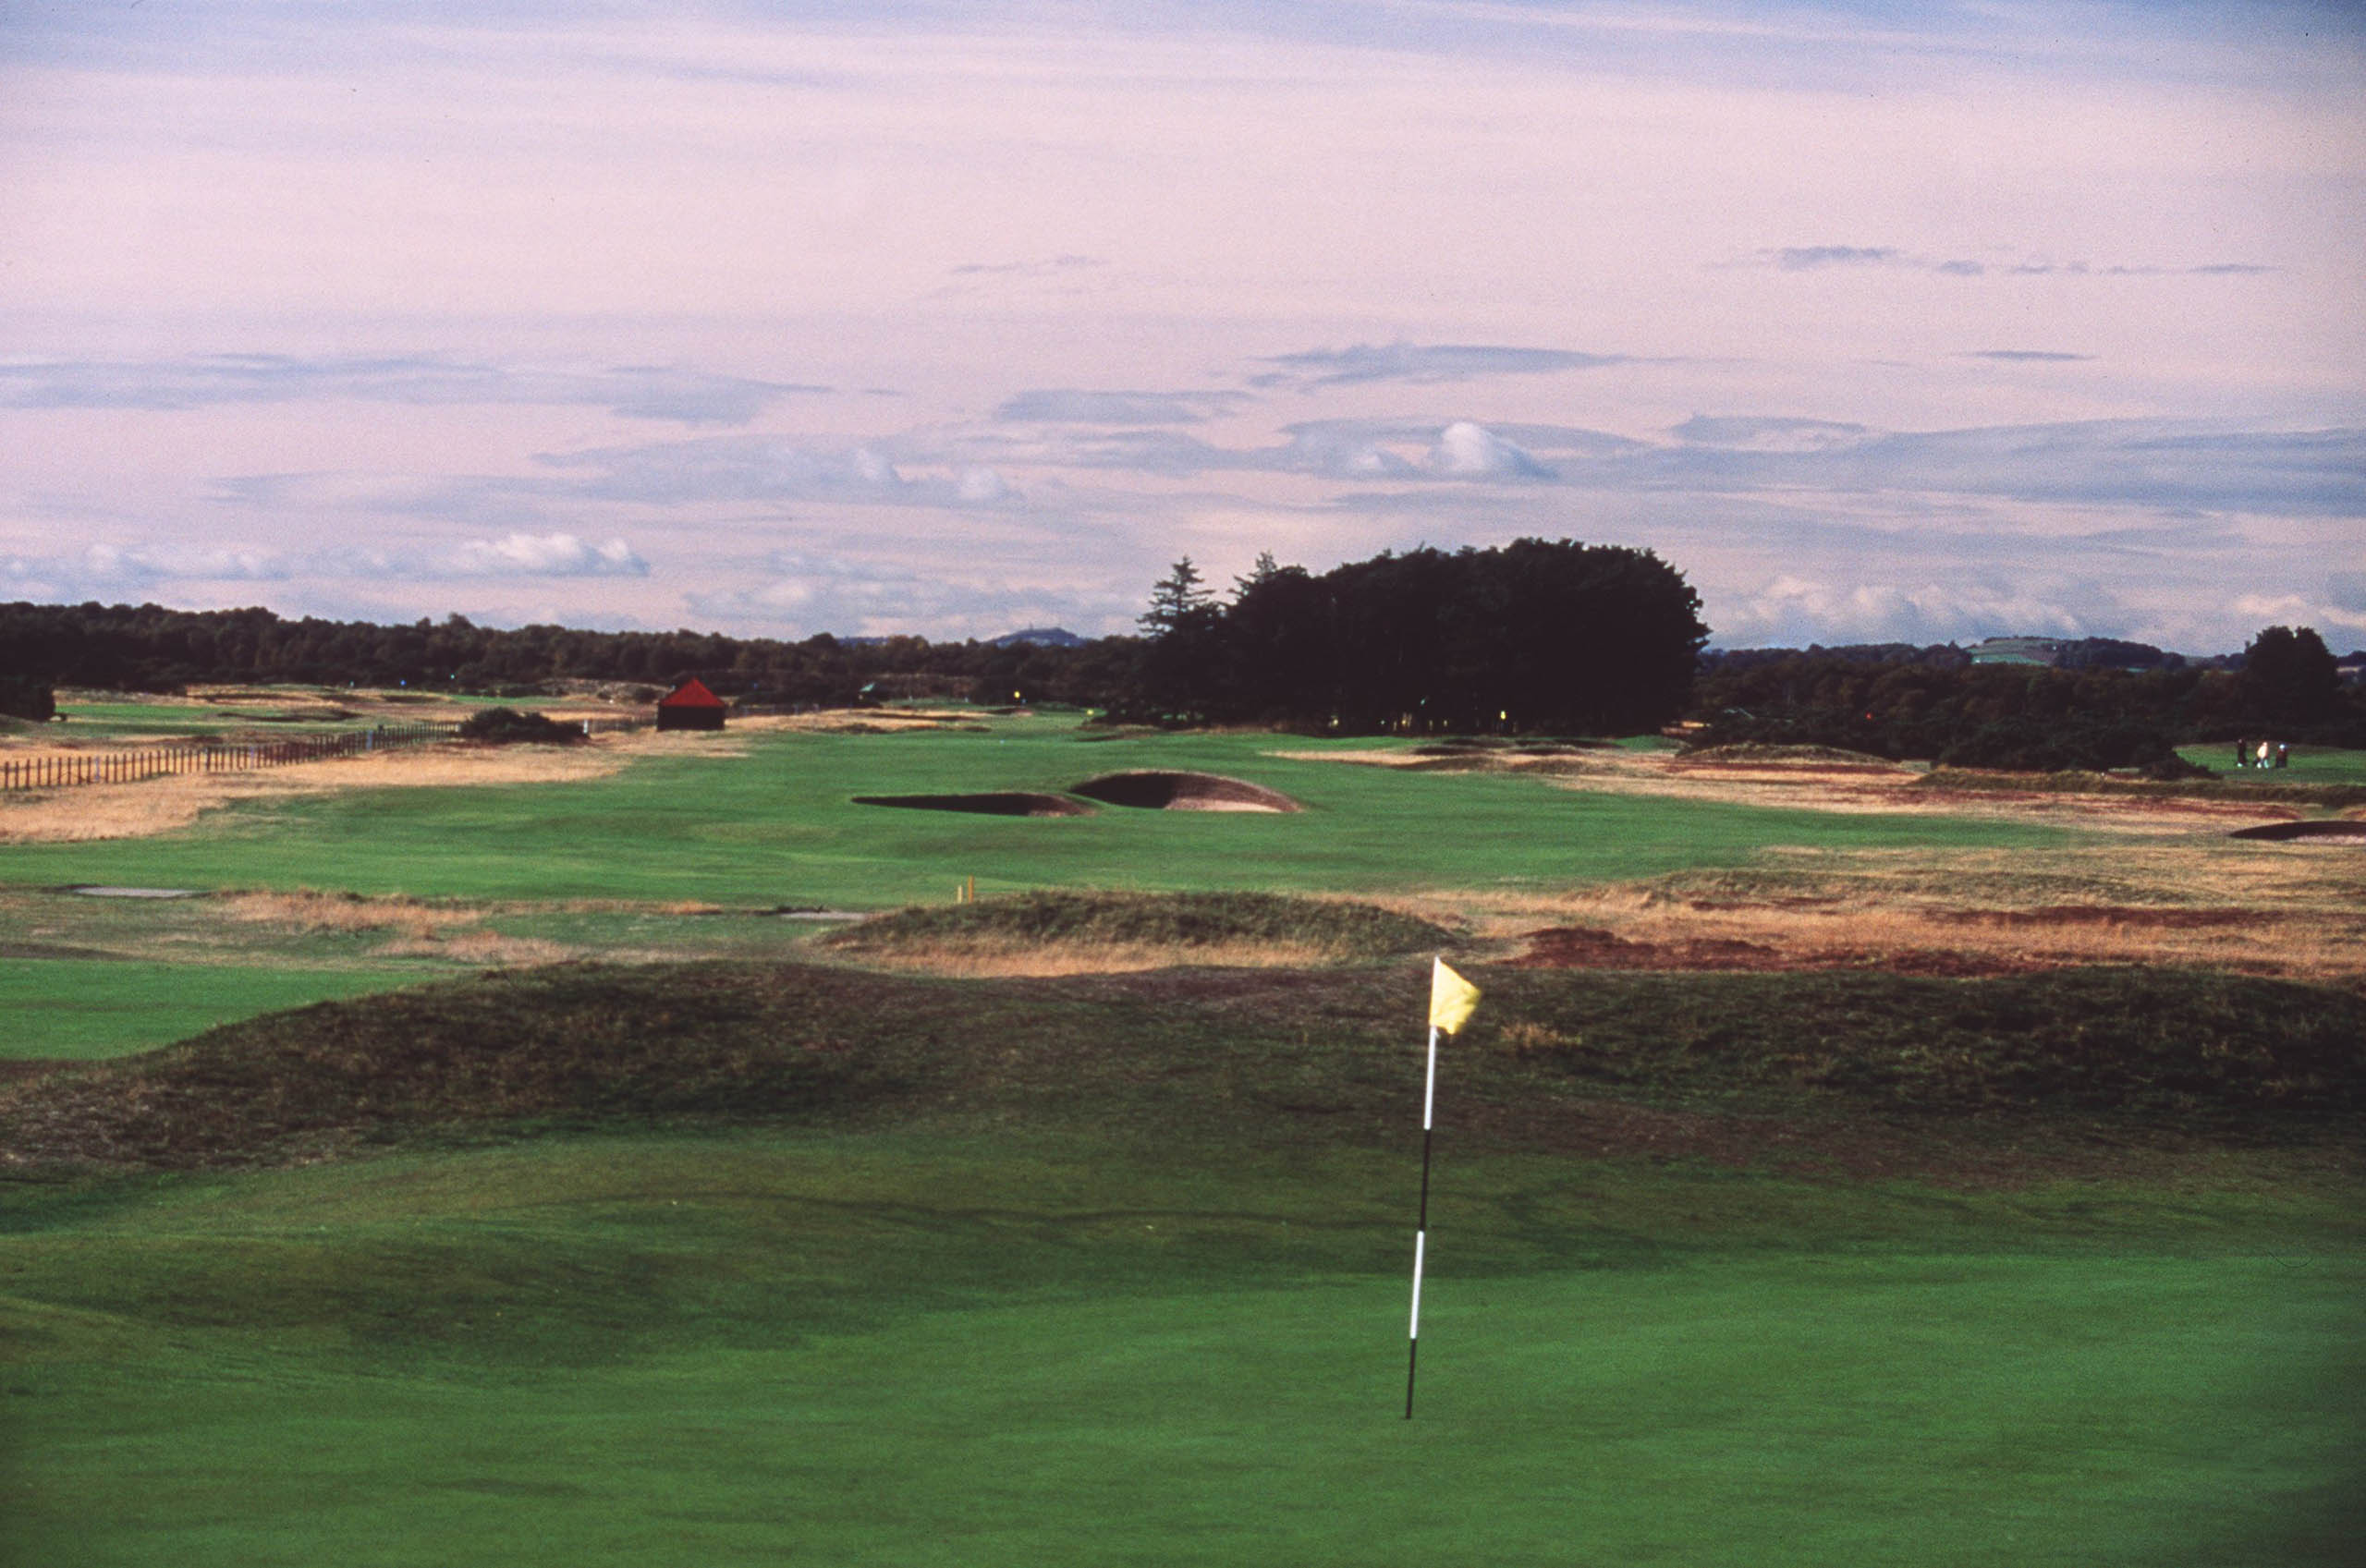 Even from a distance, courses like Carnoustie provide an escape. Photo by David Cannon/Allsport